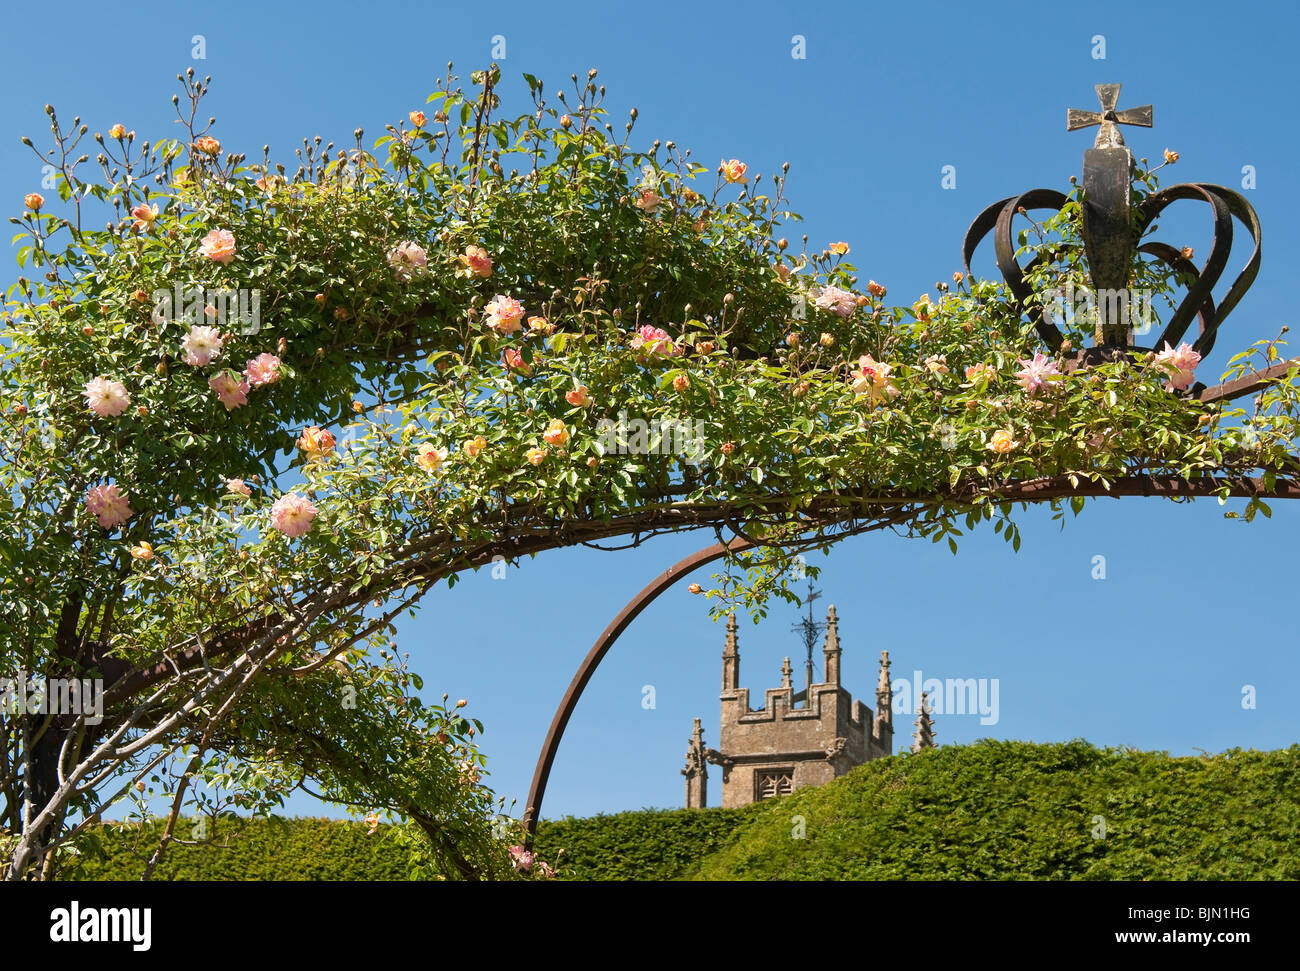 Crown Gate at the Queens Garden at Sudeley Castle, a castle located near Winchcombe, Gloucestershire, England. - Stock Image